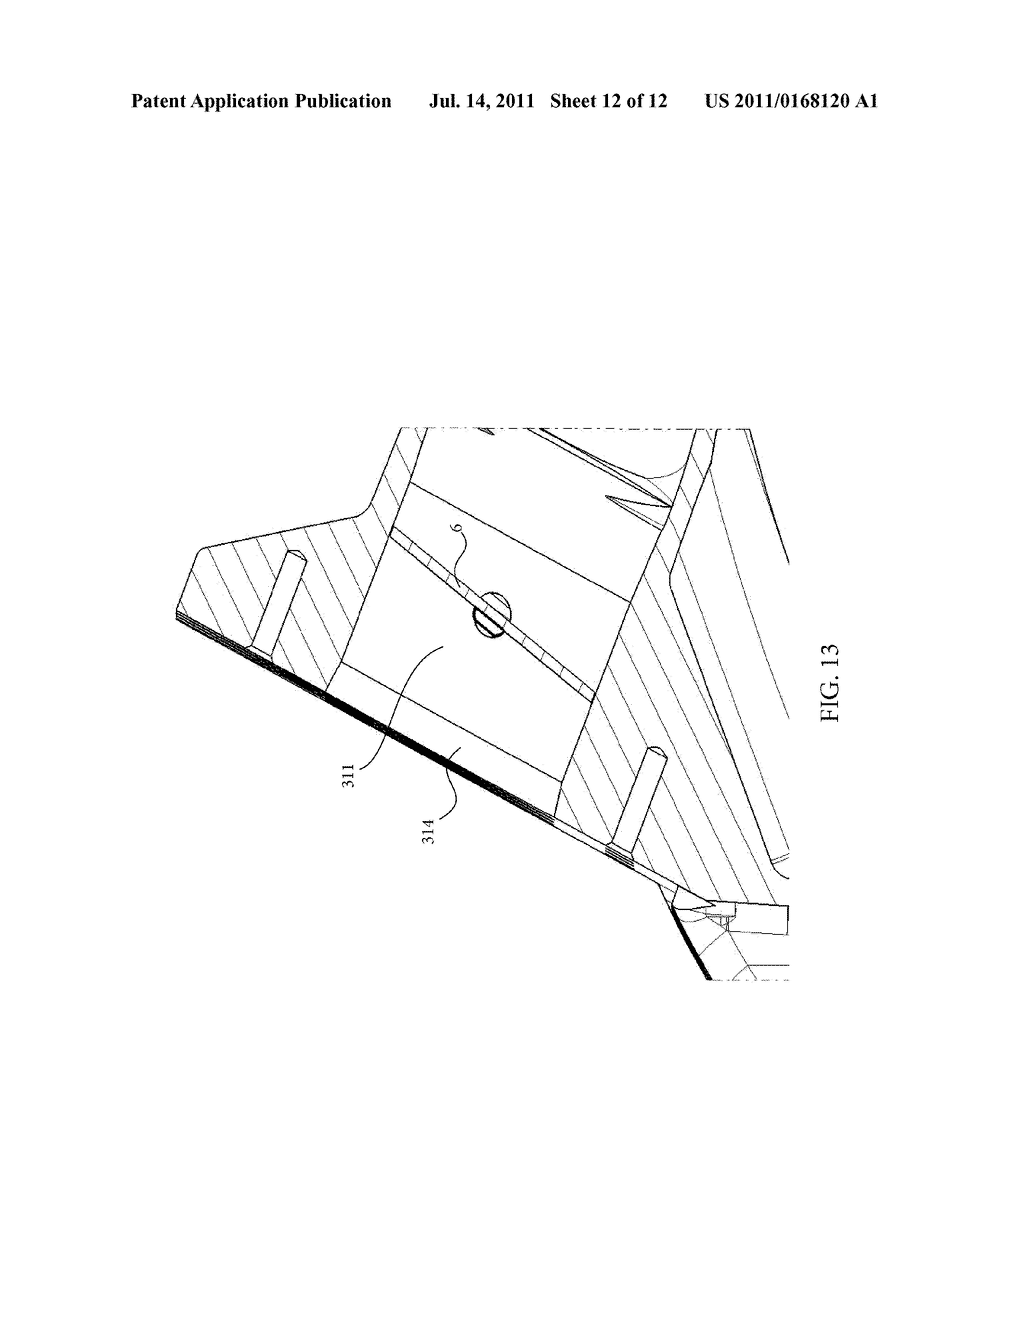 Modular Cross Ram High Performance Intake Manifold For V Type Multi Engine With Diagram Cylinder Internal Combustion Engines Schematic And Image 13